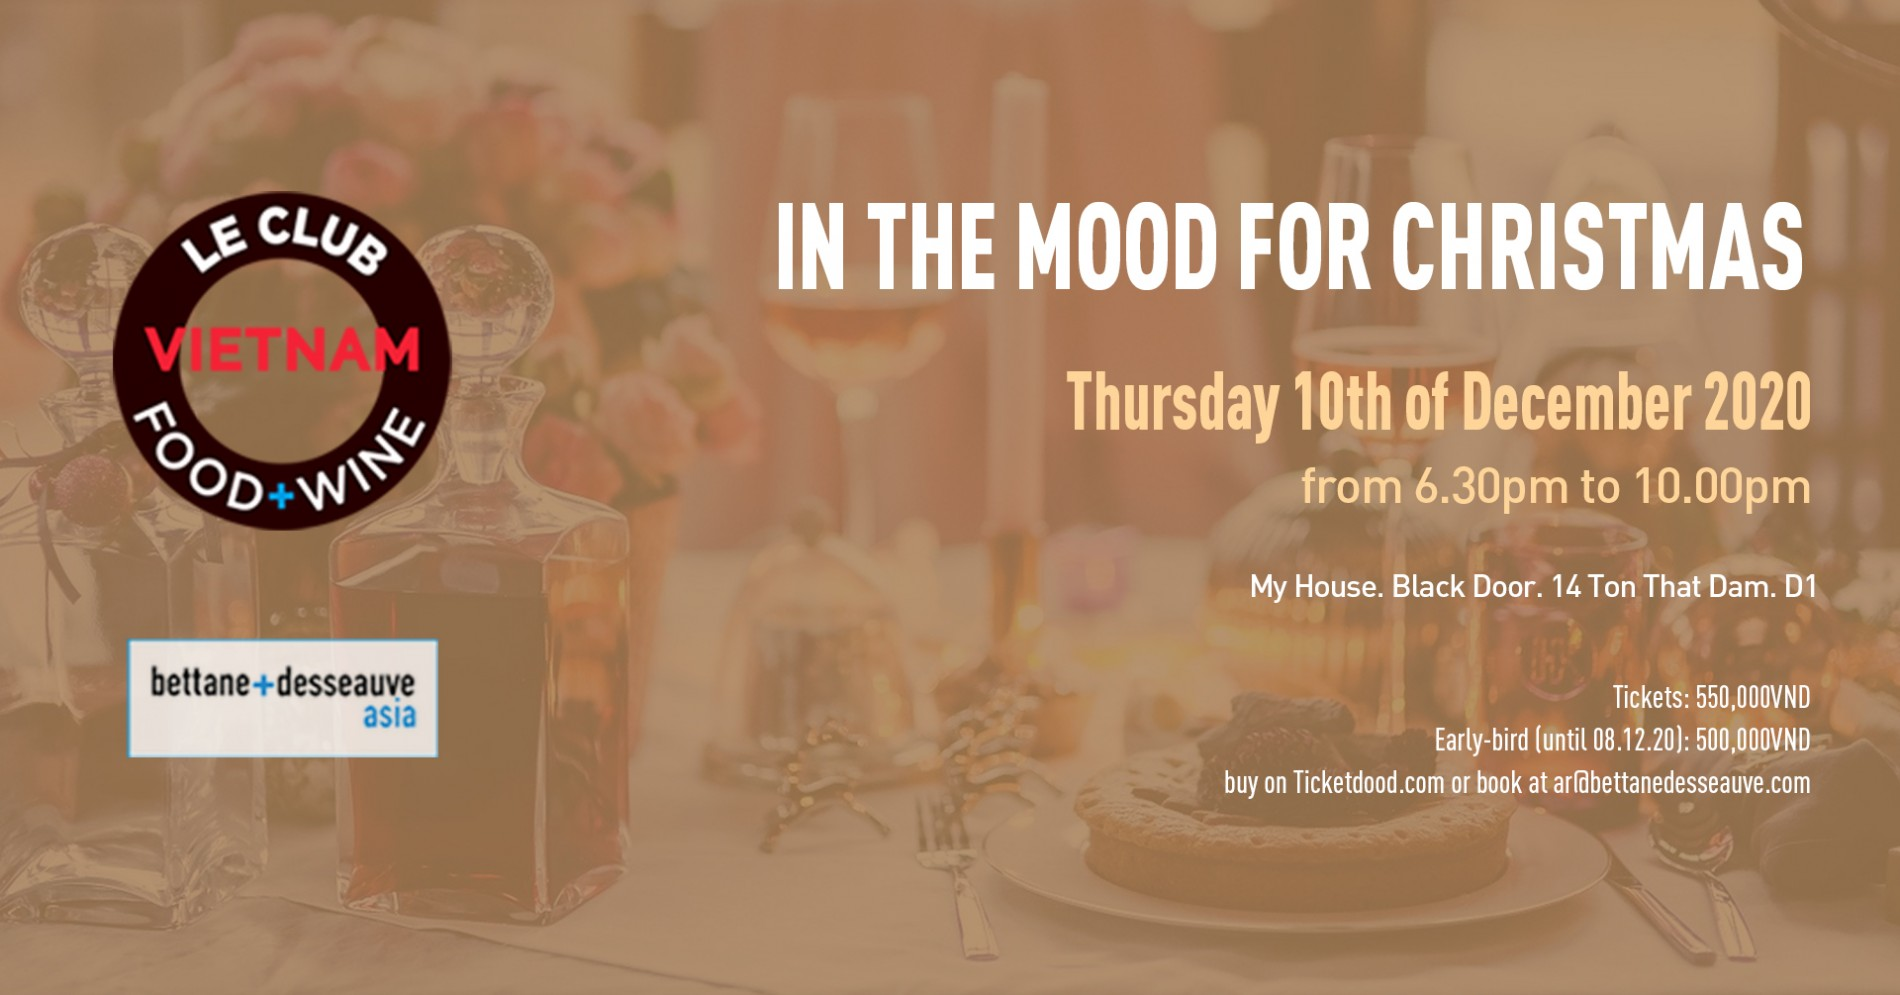 Le Club Food & Wine - In the Mood for Christmas